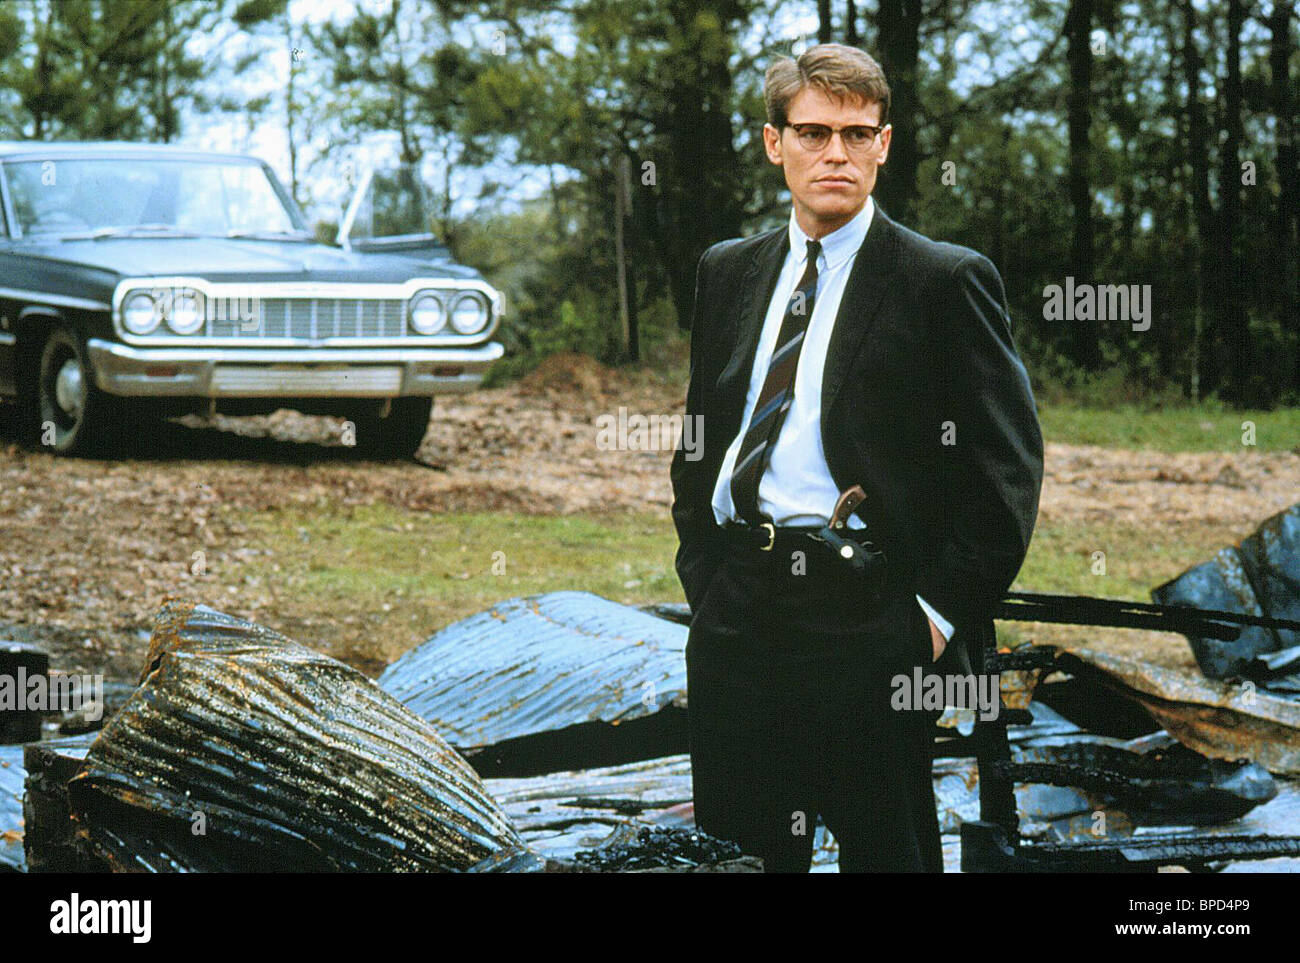 mississippi company stock photos mississippi company stock willem dafoe mississippi burning mississippi burning 1988 stock image